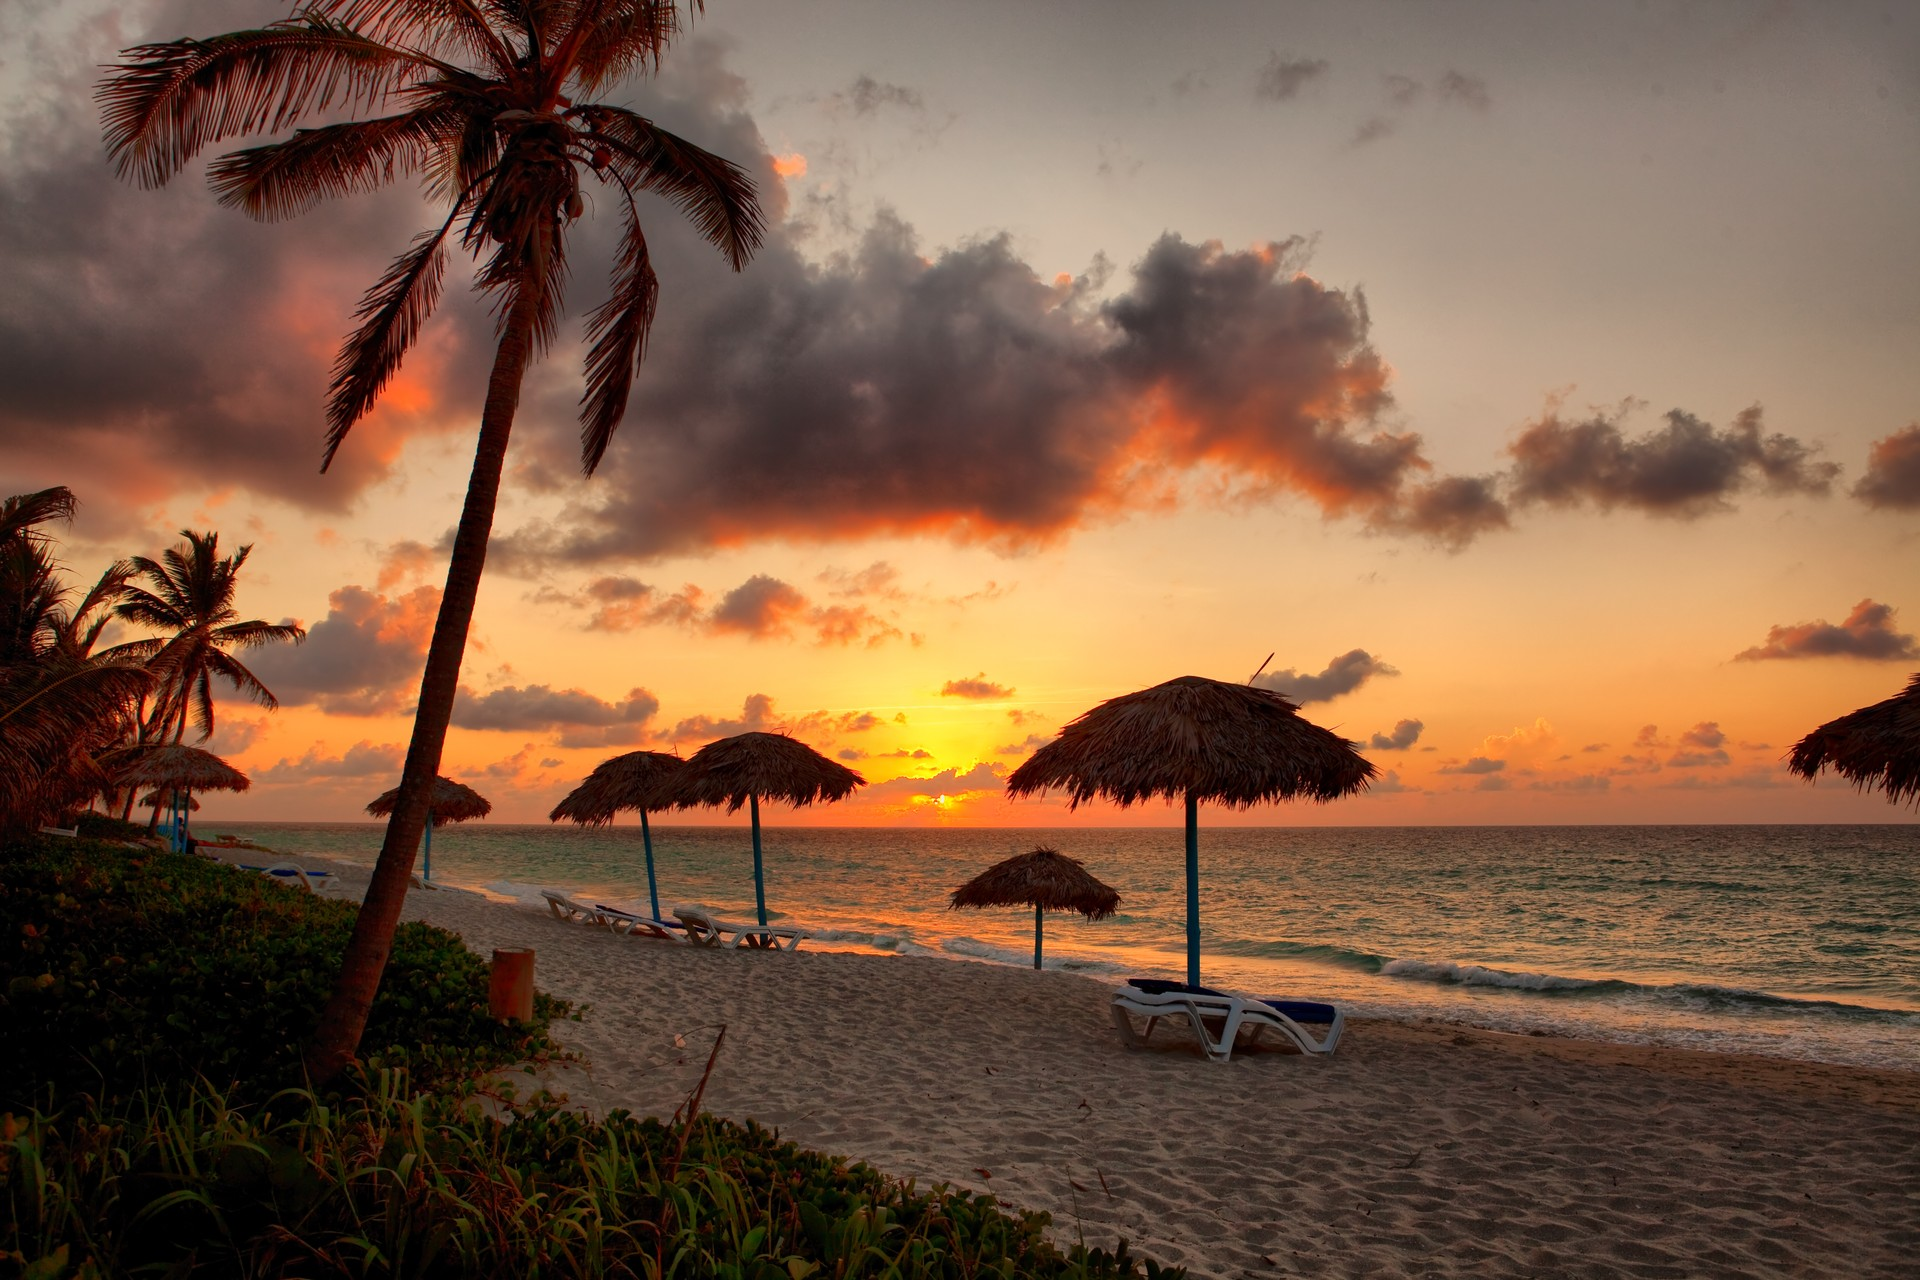 A beach at sunset in Varadero, Cuba